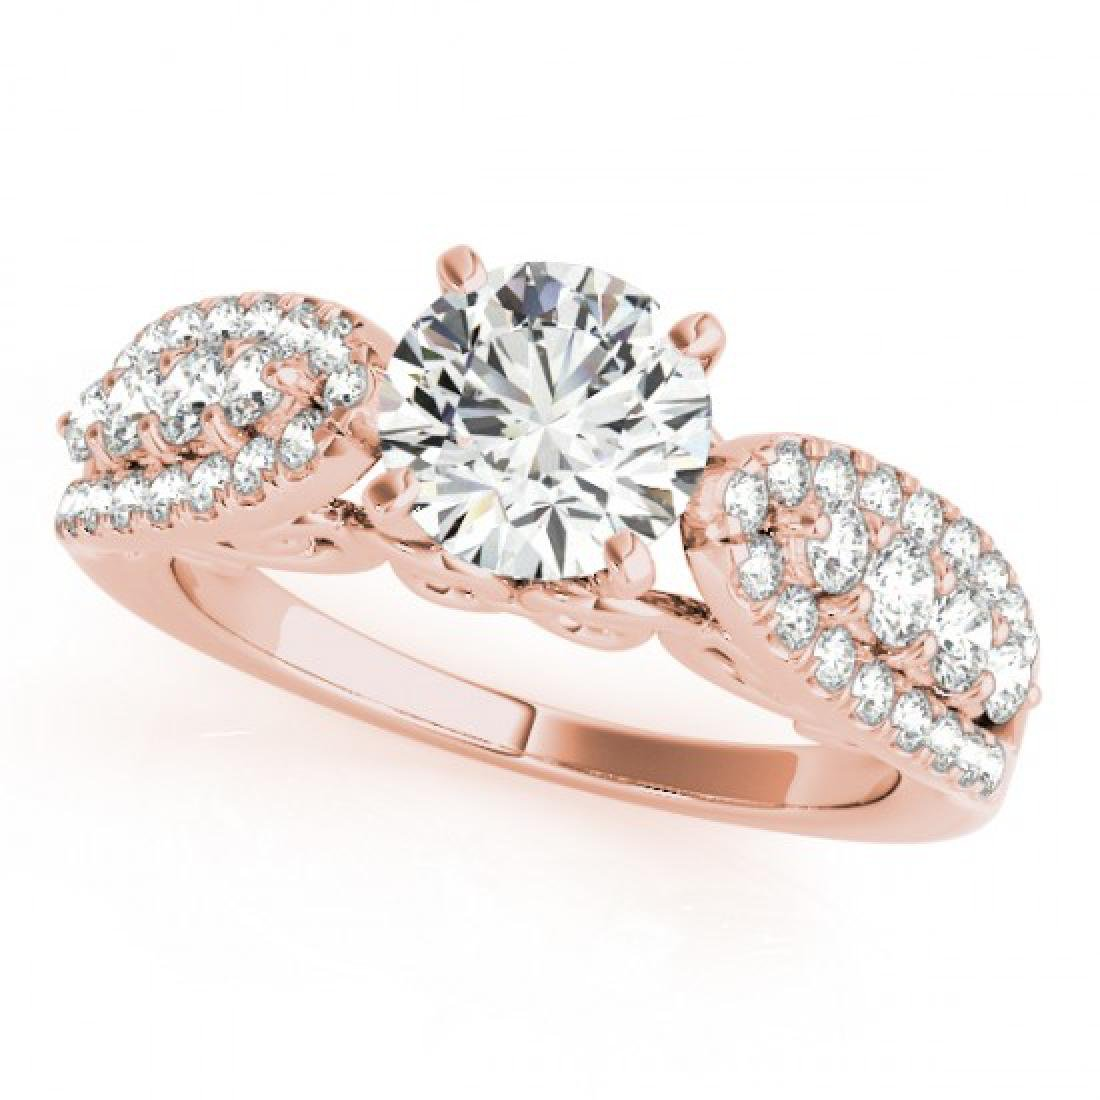 1.7 CTW Certified VS/SI Diamond Solitaire Ring 14K Rose